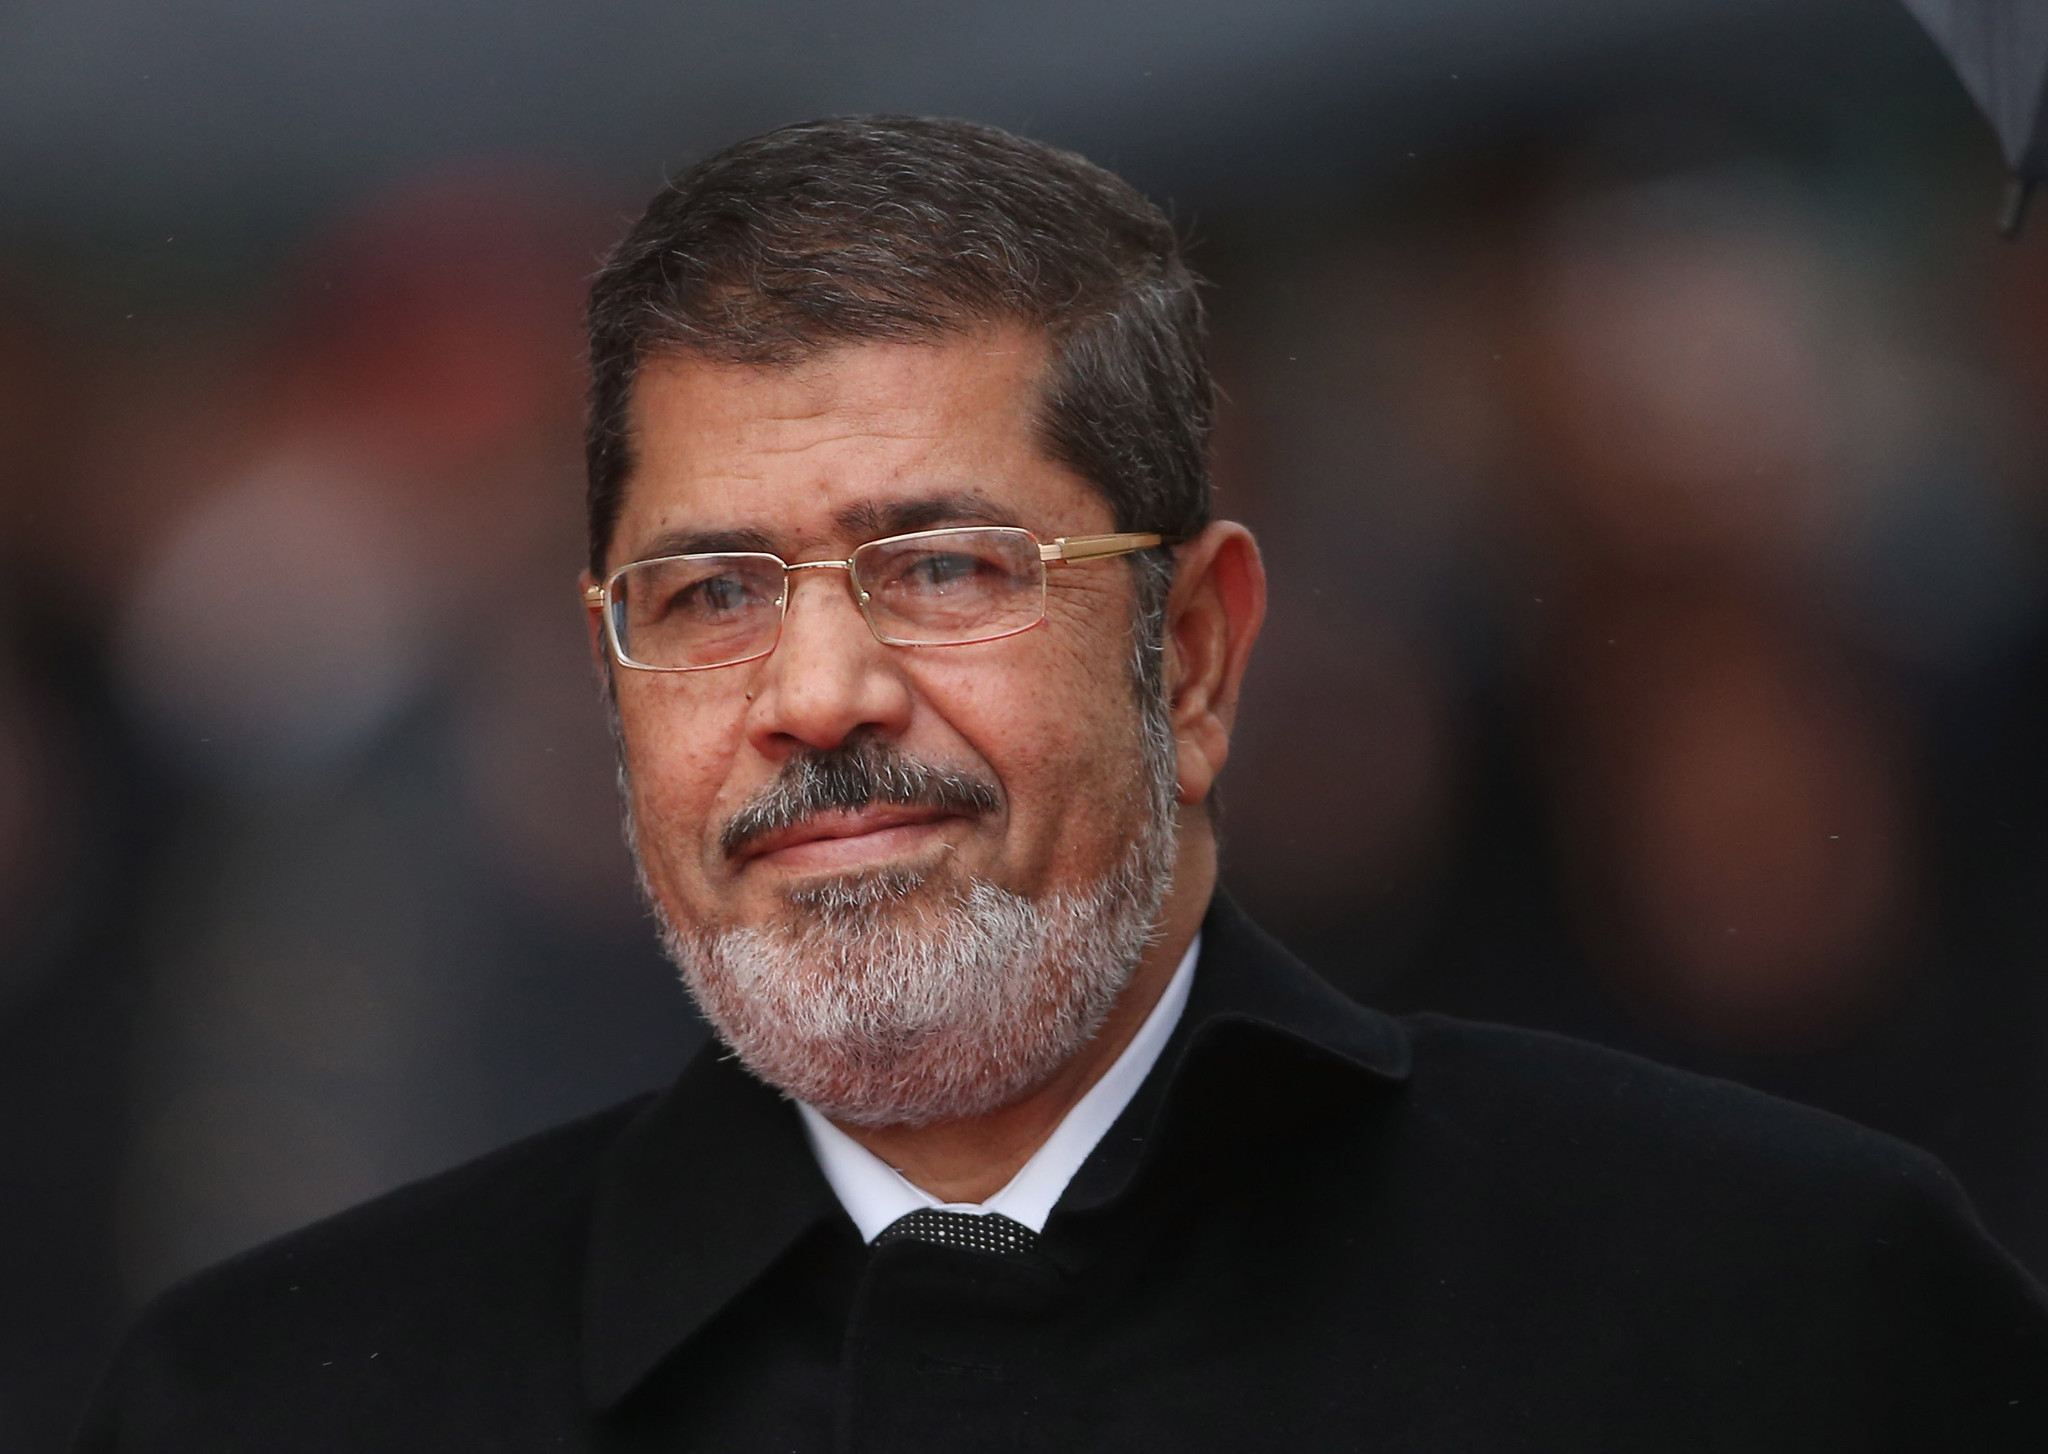 Egypt's former president Mohammed Morsi, ousted in 2013, dies in court while on trial, family says